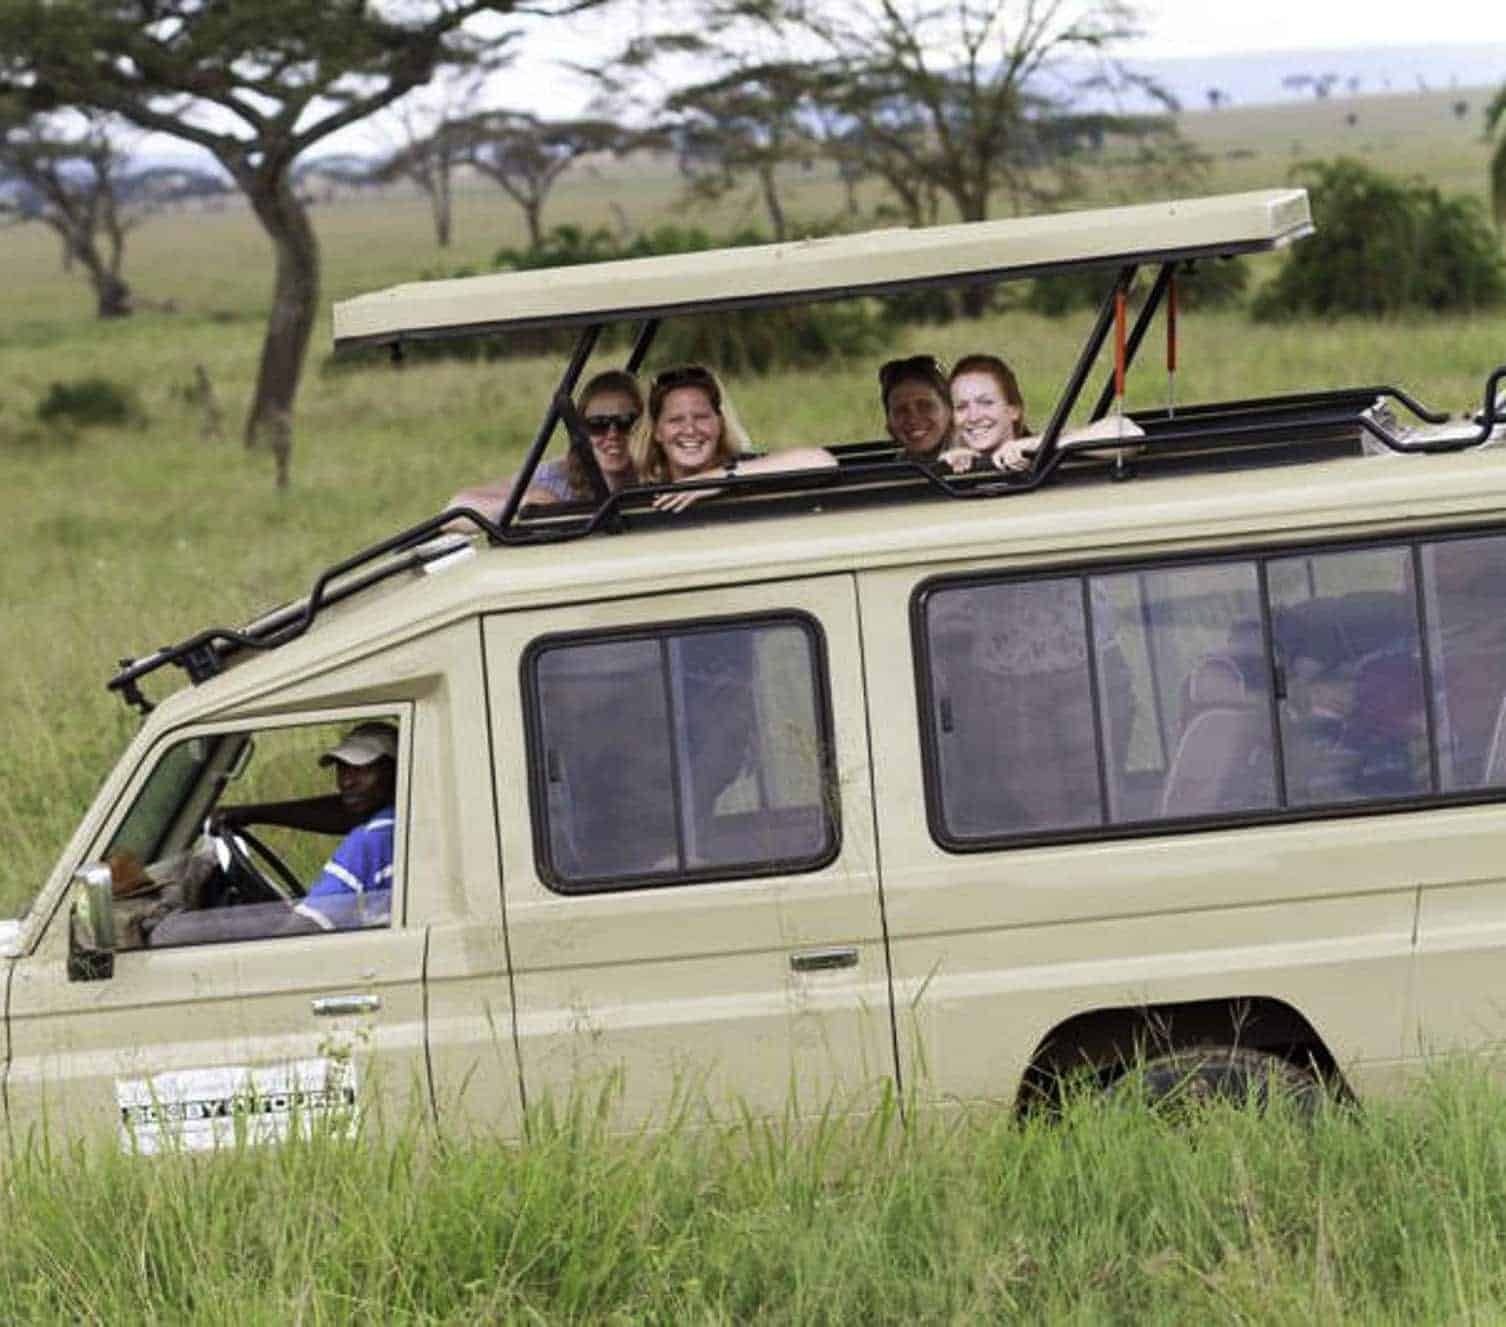 Tanzania Safari Vehicle Bobby Tours